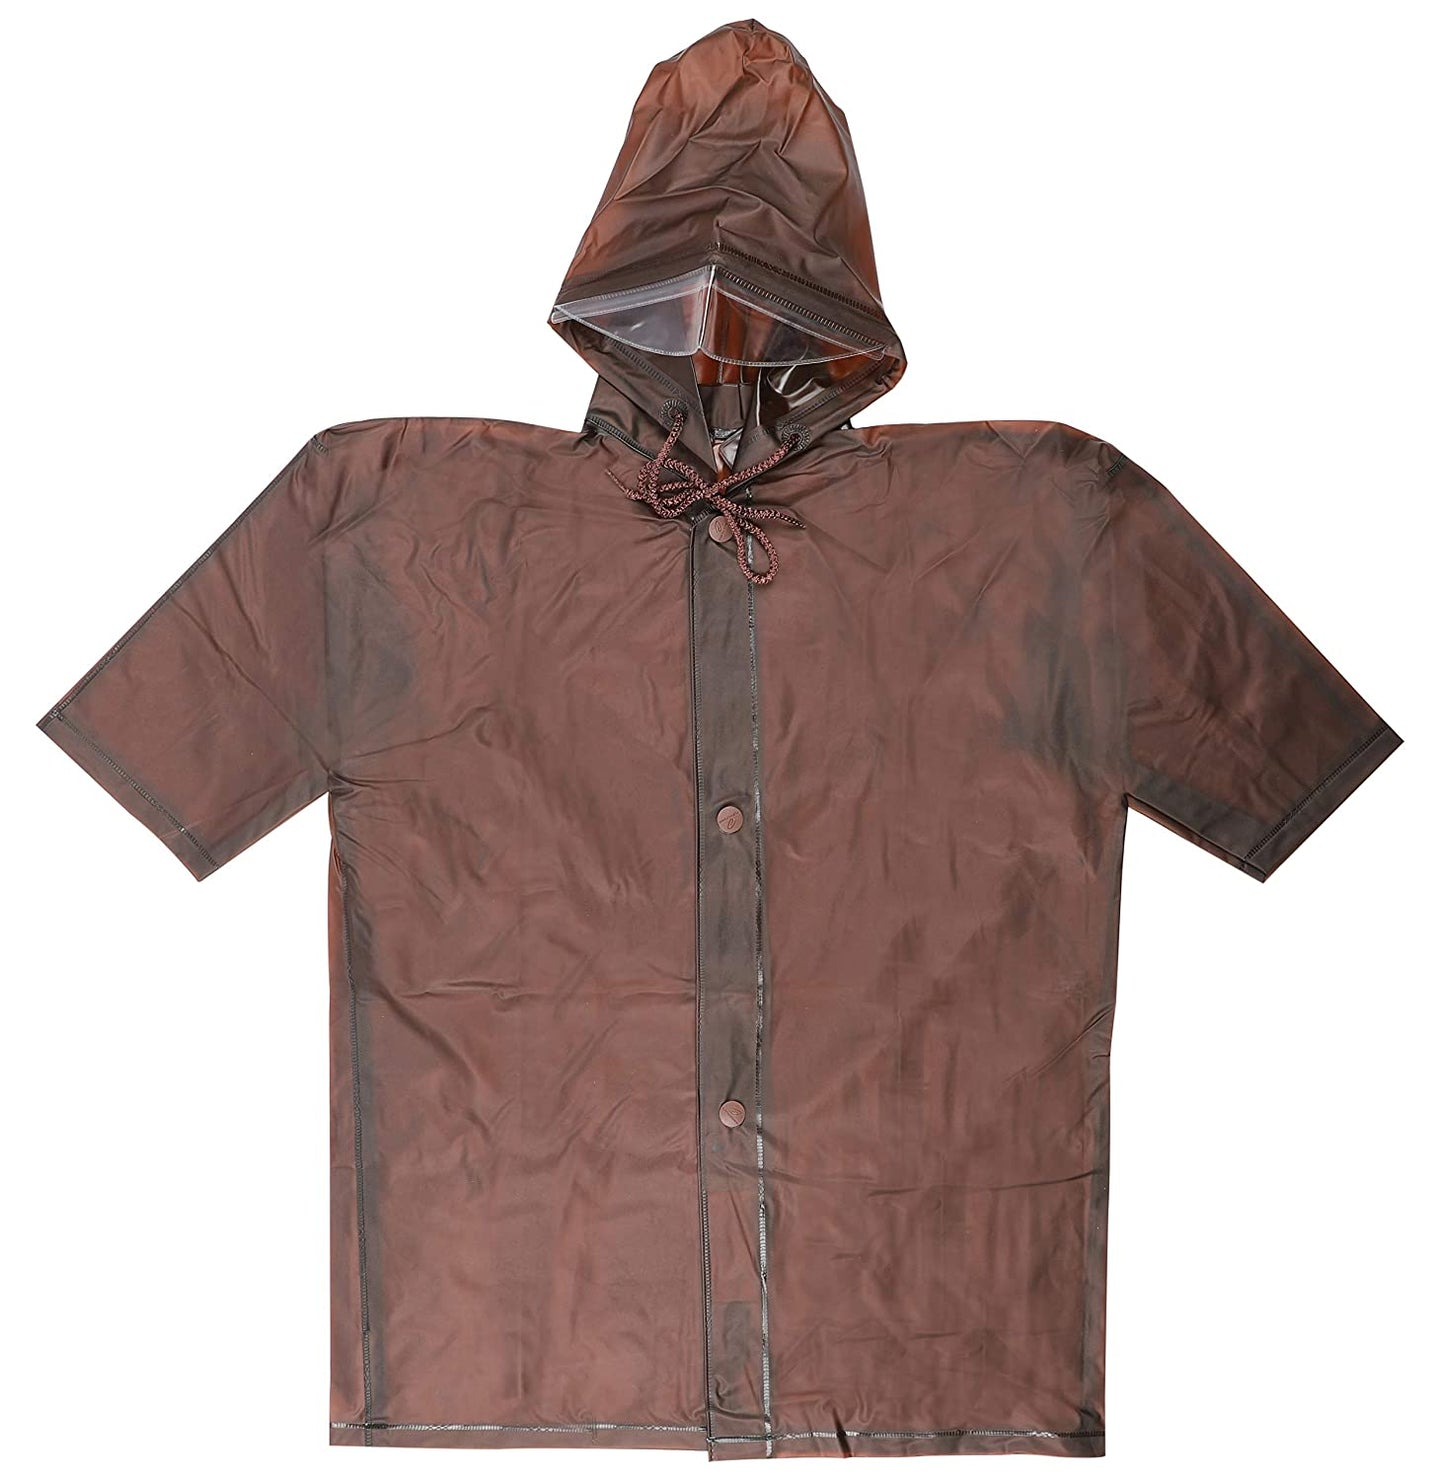 Romano nx Waterproof Rain Overcoat for Boy romanonx.com